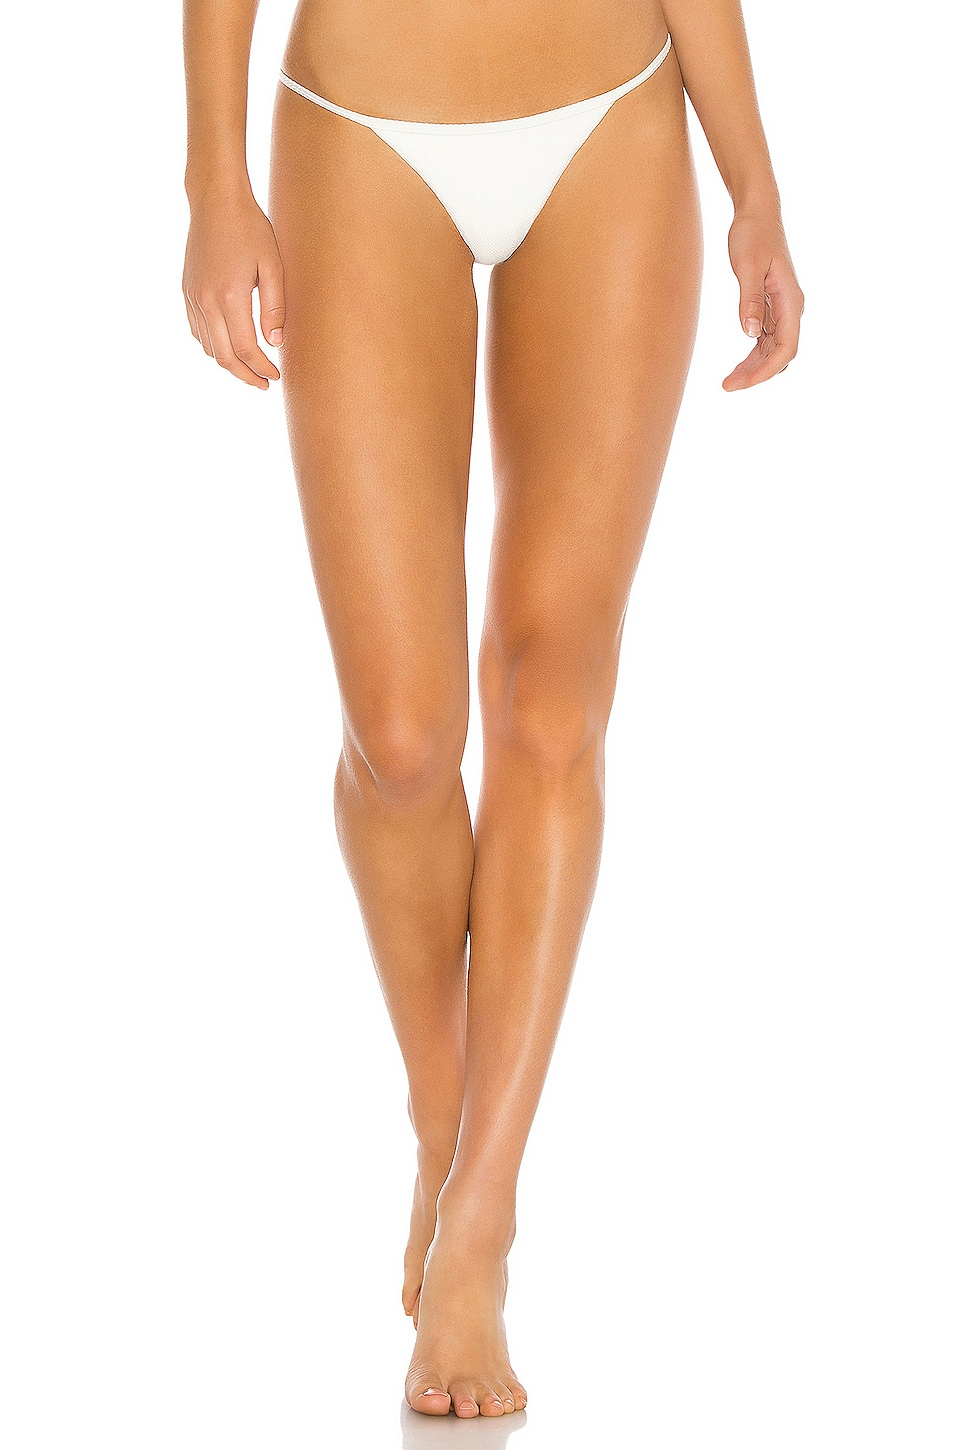 lovewave Cara Bottom in White